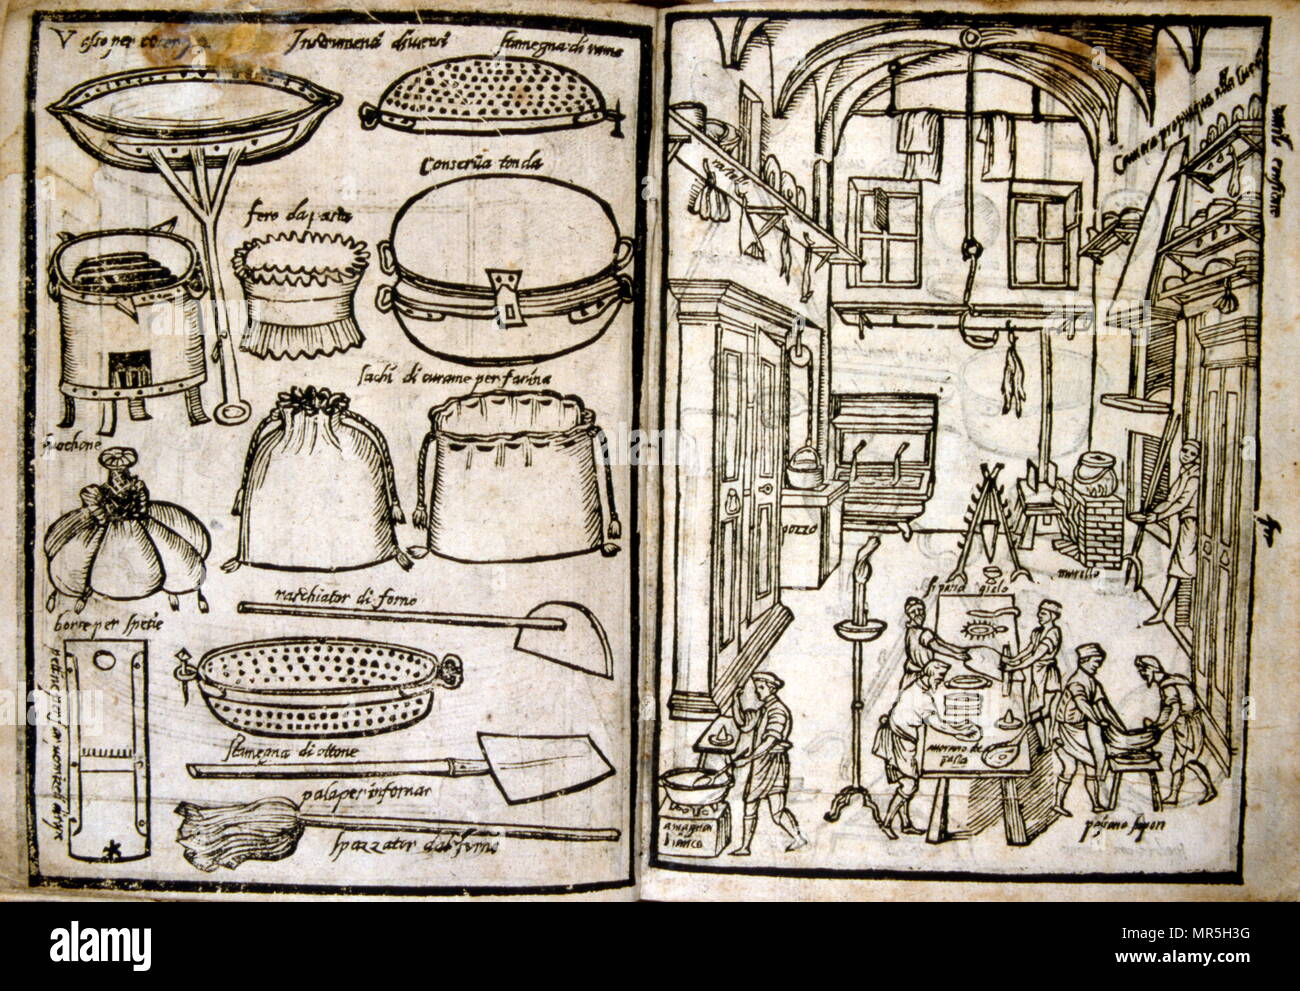 Woodcut illustrations of a renaissance kitchen and equipment. From 'Opera dell'arte del cucinare' by Bartolomeo Scappi (c. 1500 – 1577), an important Italian Renaissance chef. He acquired fame in 1570 when his monumental cookbook Opera dell'arte del cucinare, was published. In the book he lists approximately 1000 recipes of the Renaissance cuisine and describes cooking techniques and tools - Stock Image